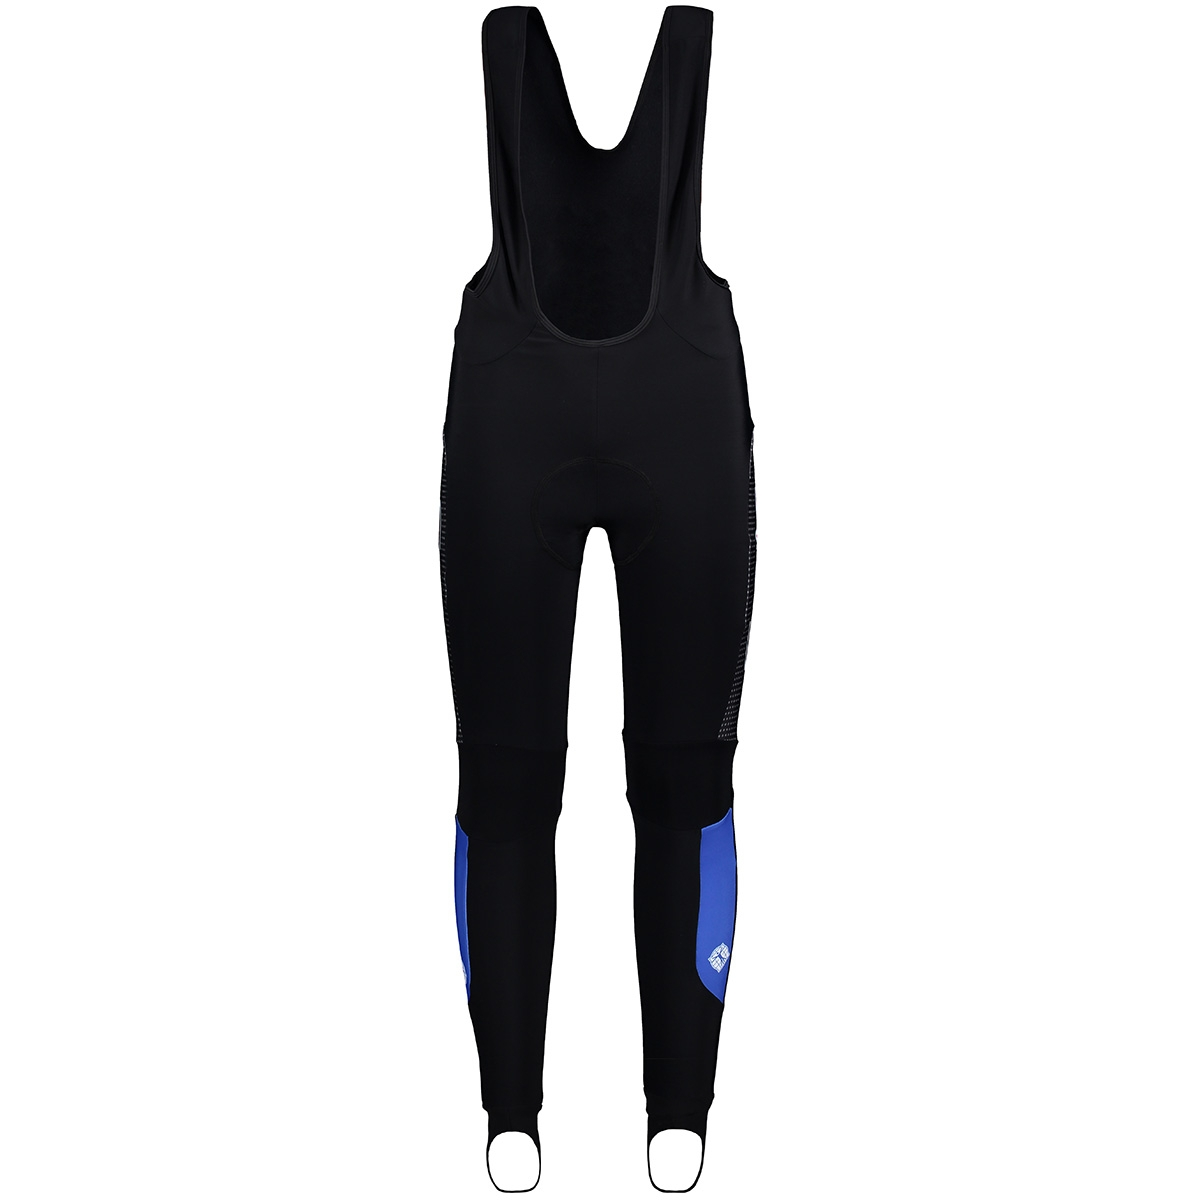 53547 bibtight race winter sans sport broek blauw wit